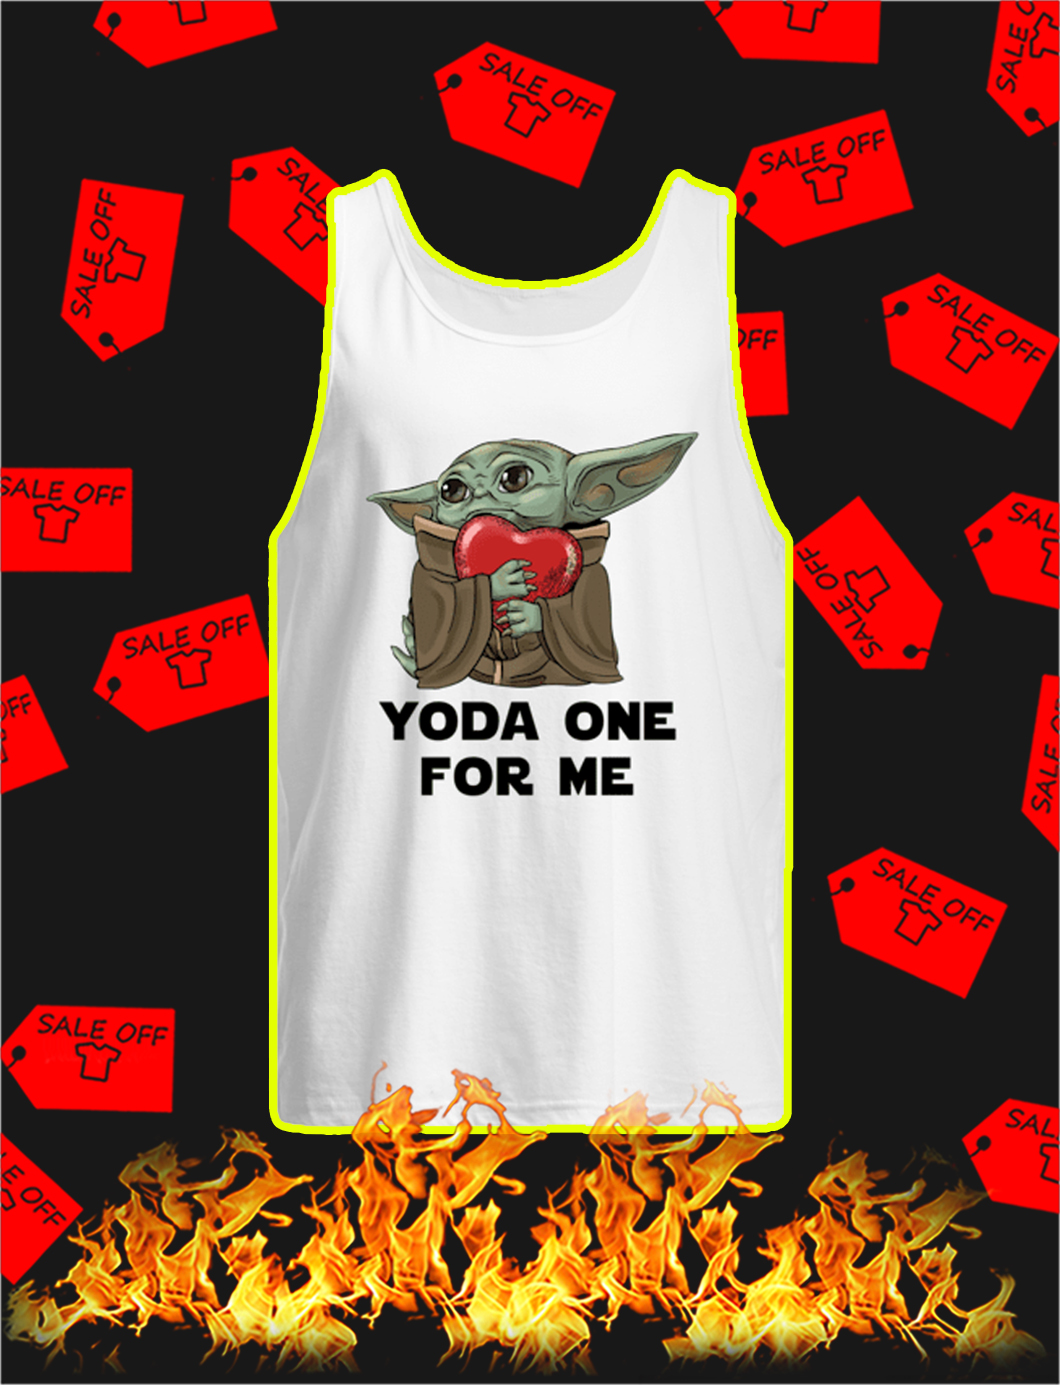 Yoda One For Me Heart tank top